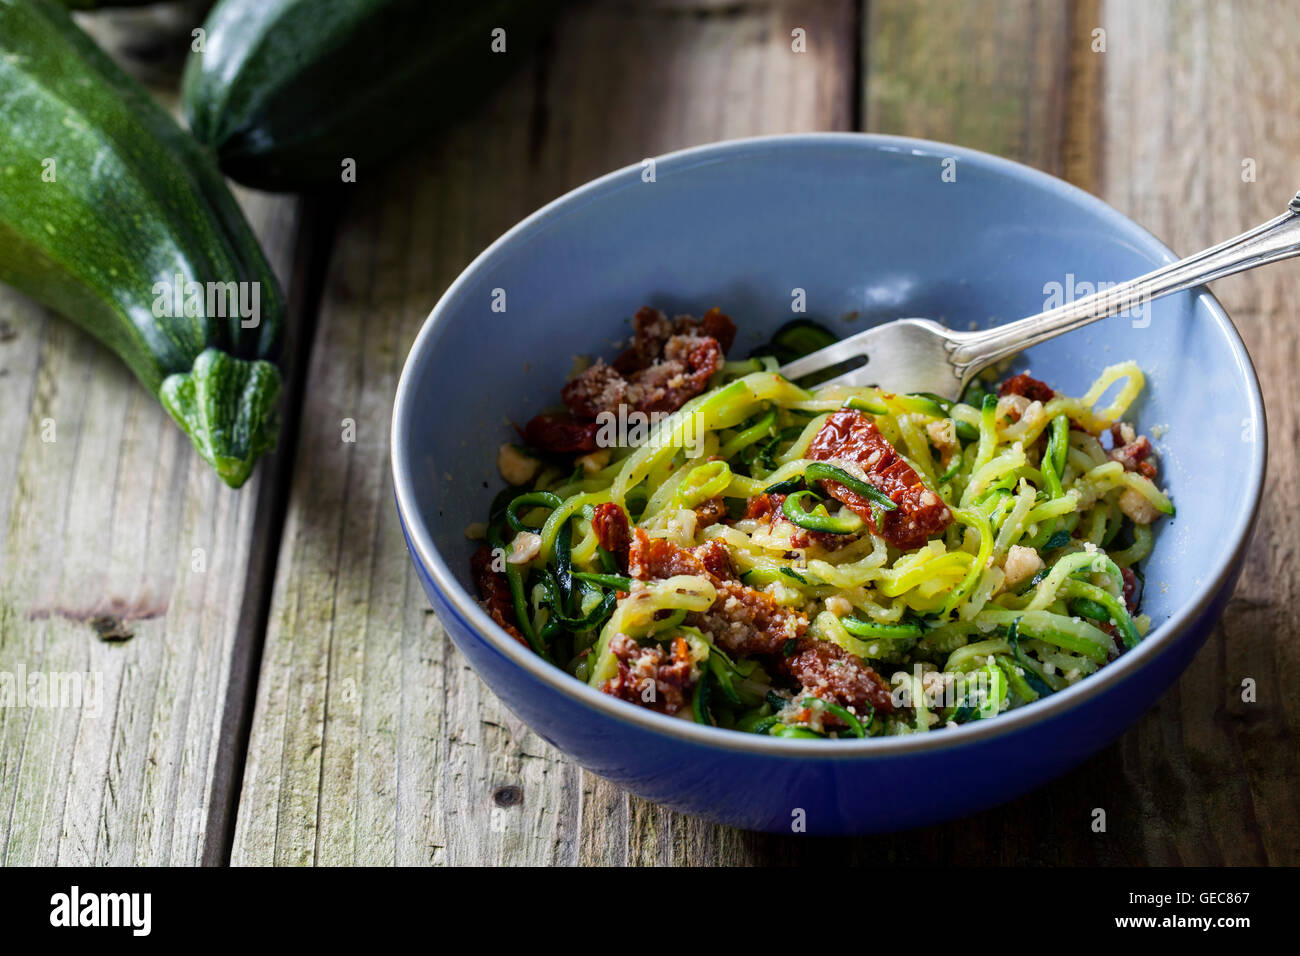 Courgette  spaghetti with sun dried tomatoes and mince hazelnuts Stock Photo